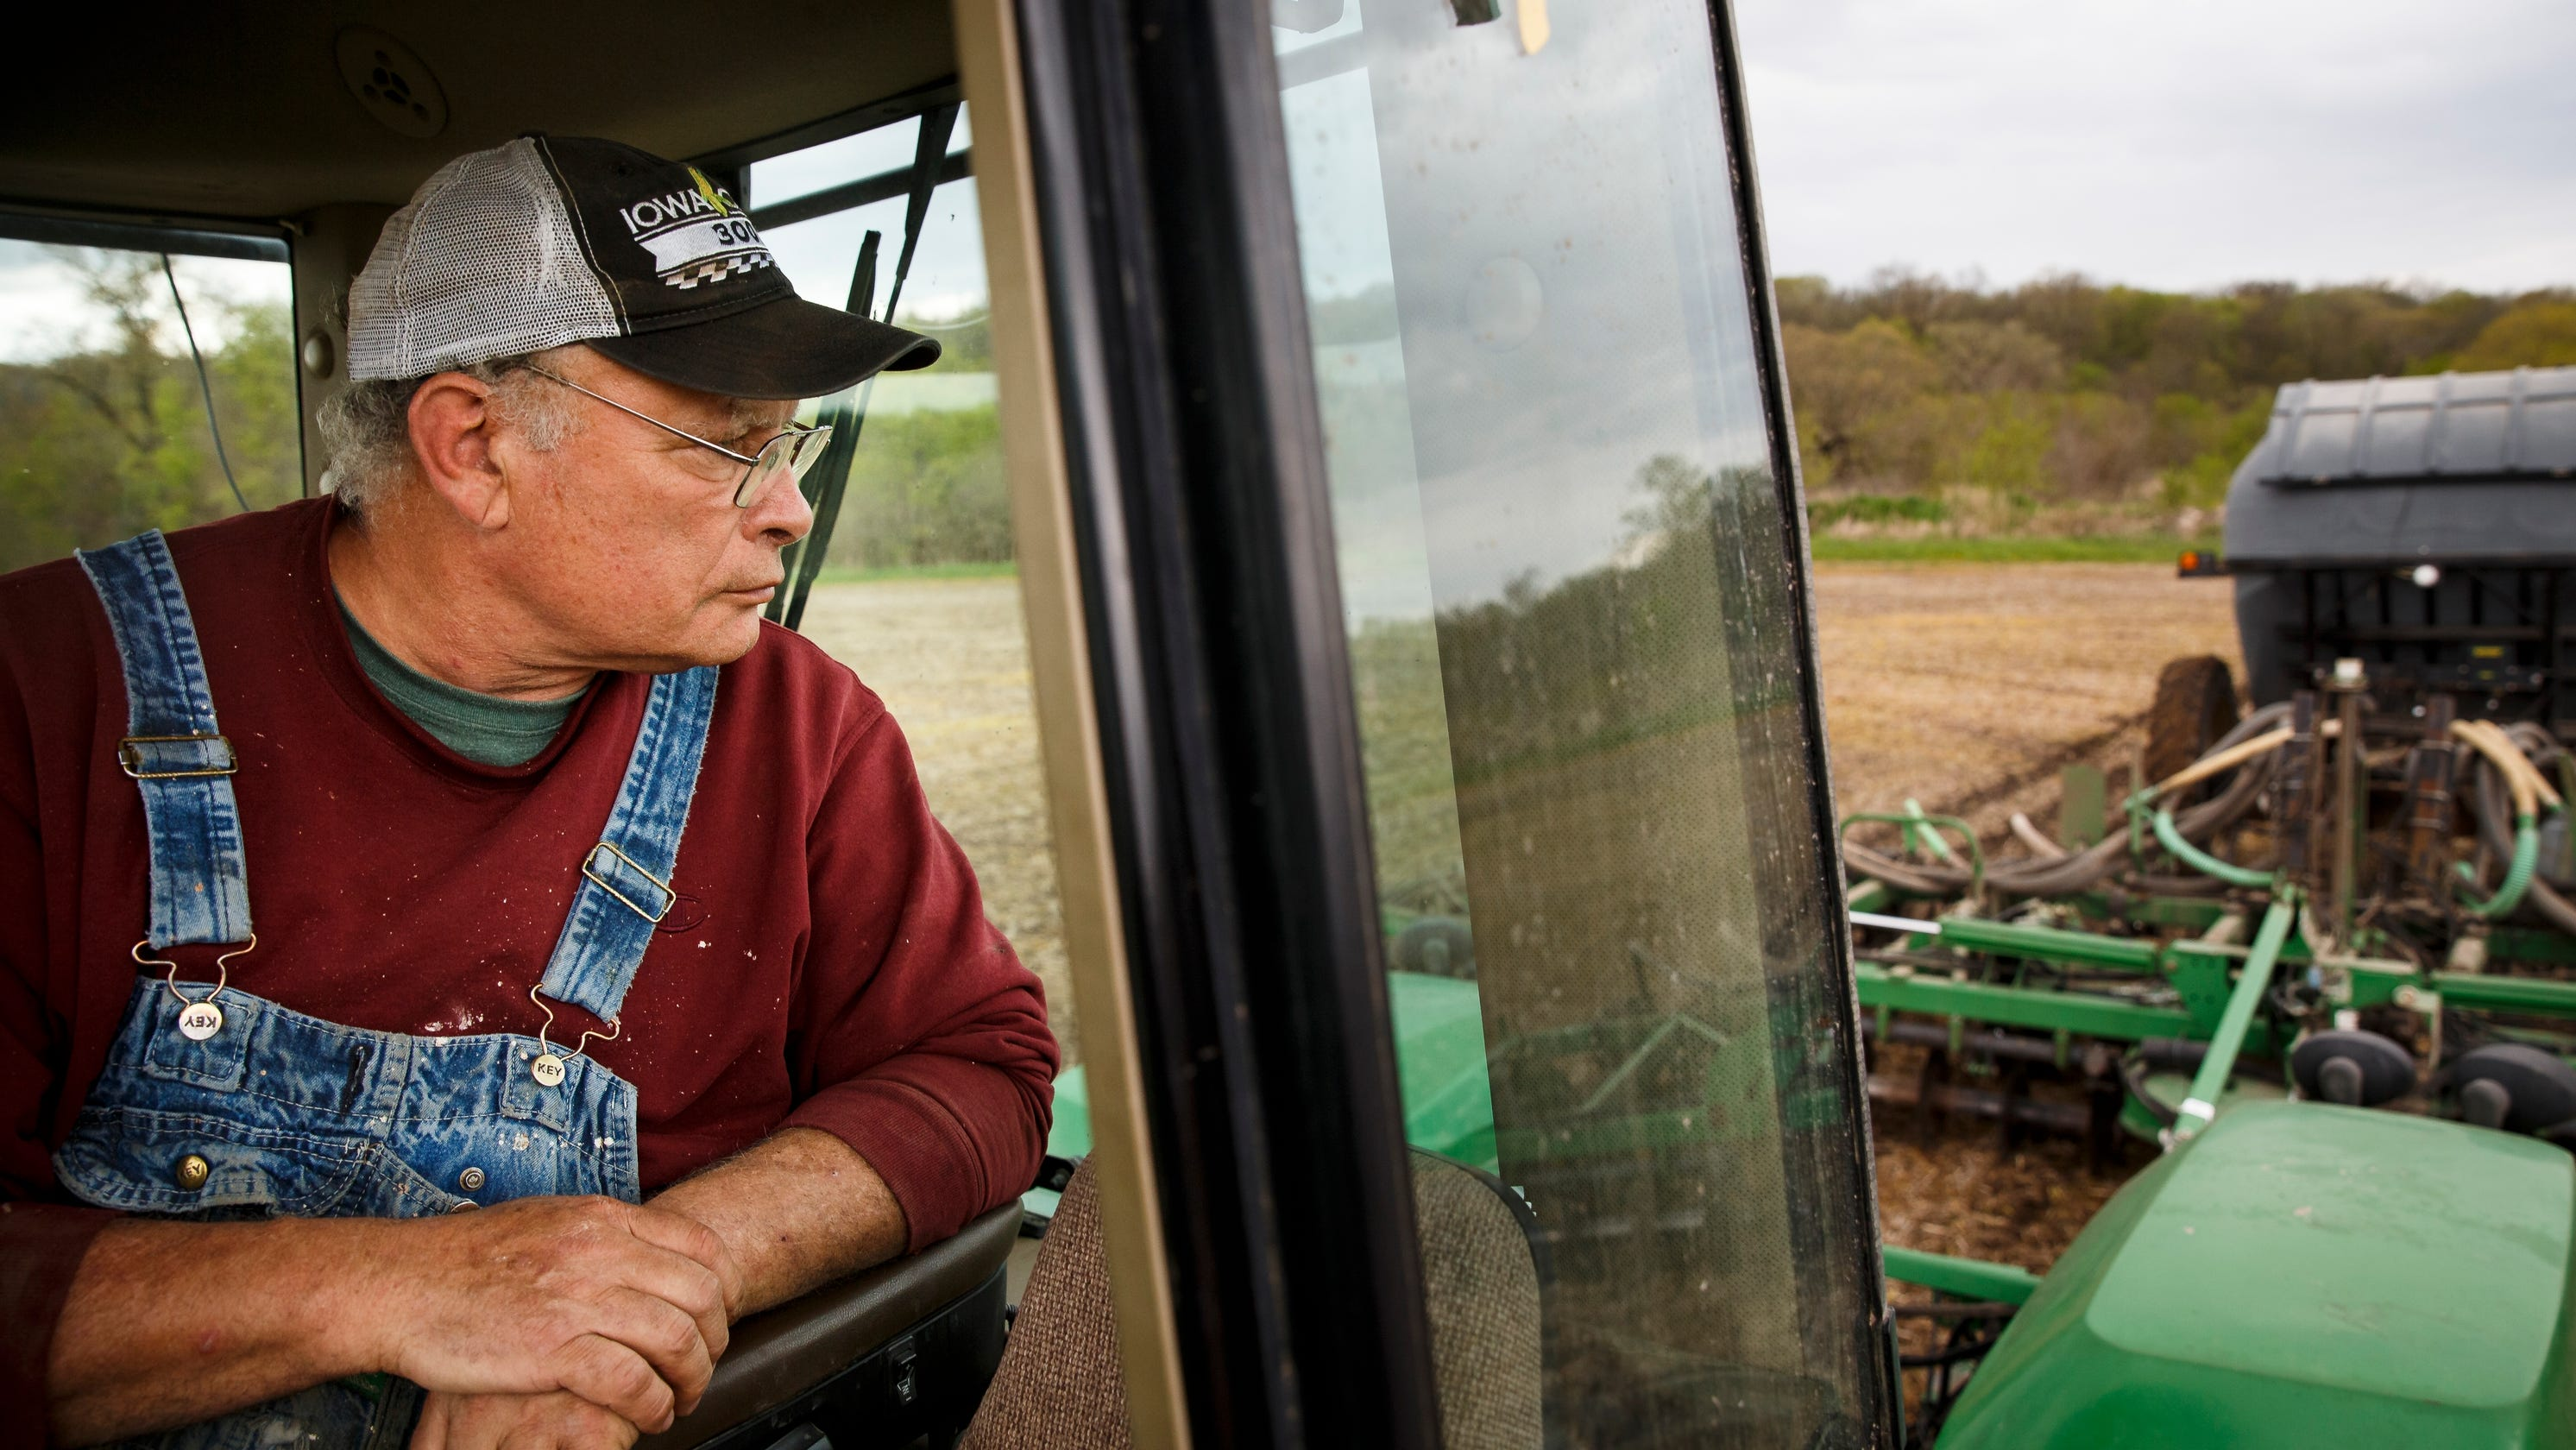 Iowa farmers try to hang on through pandemic